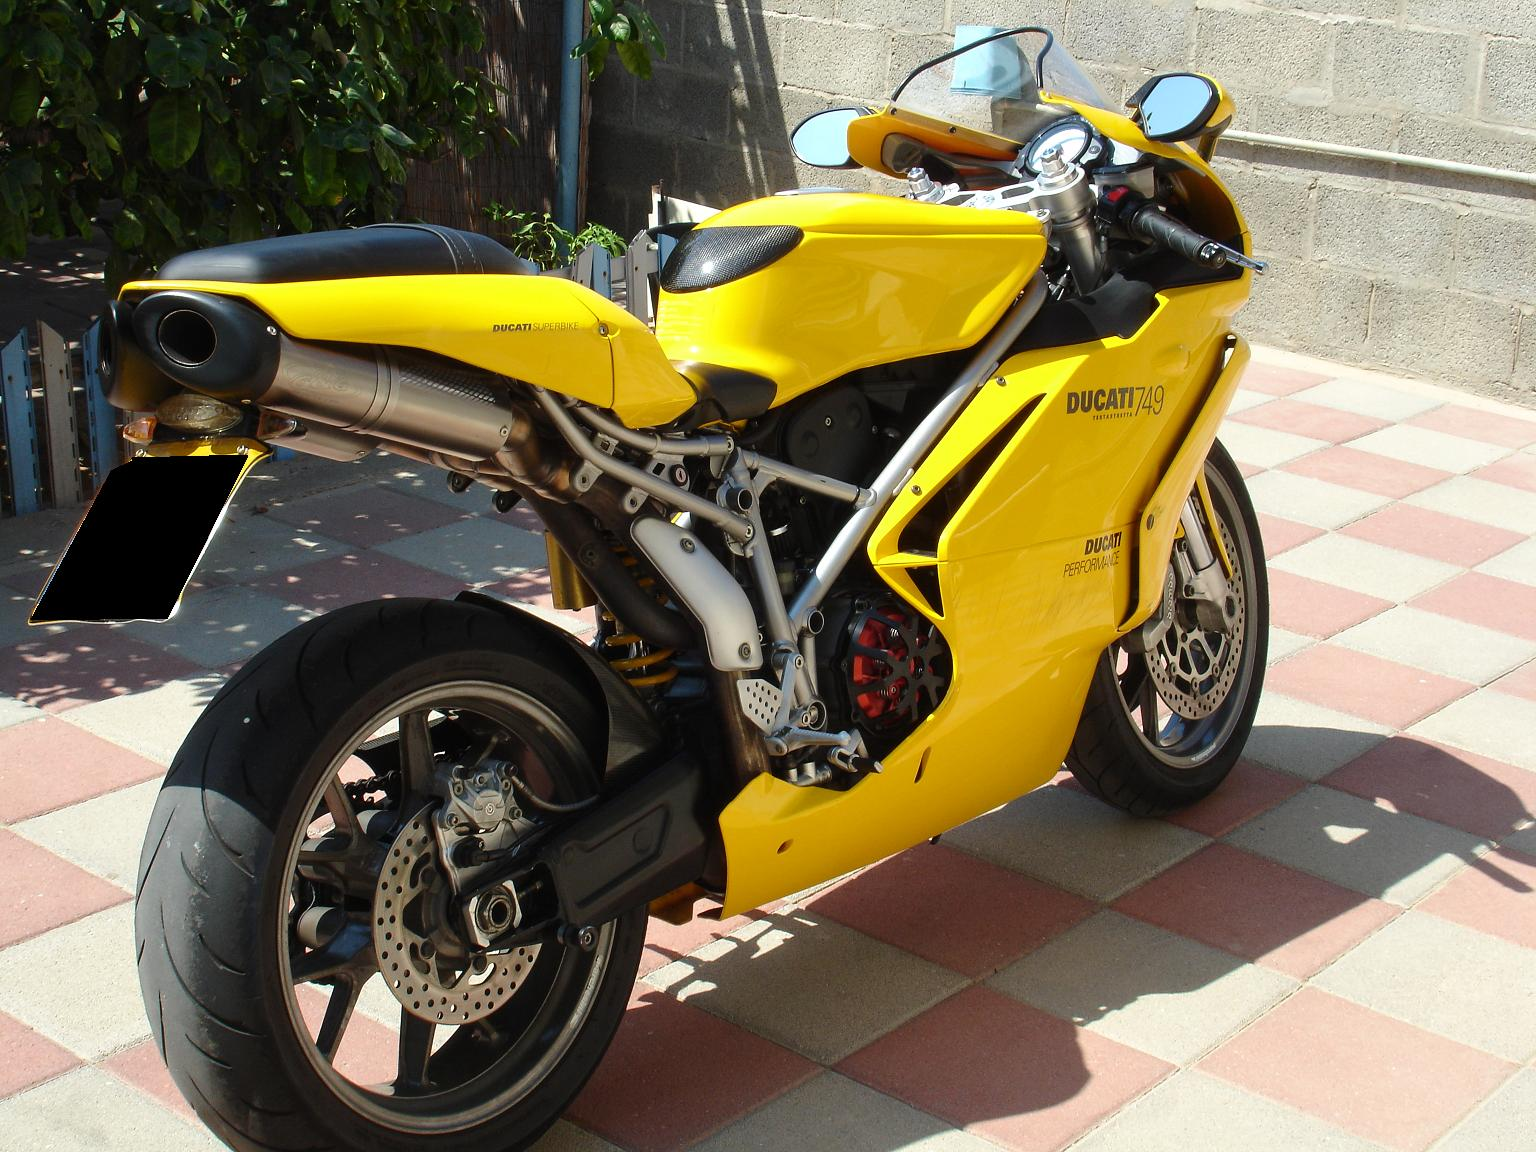 749 exhaust options - page 2 - ducati.ms - the ultimate ducati forum